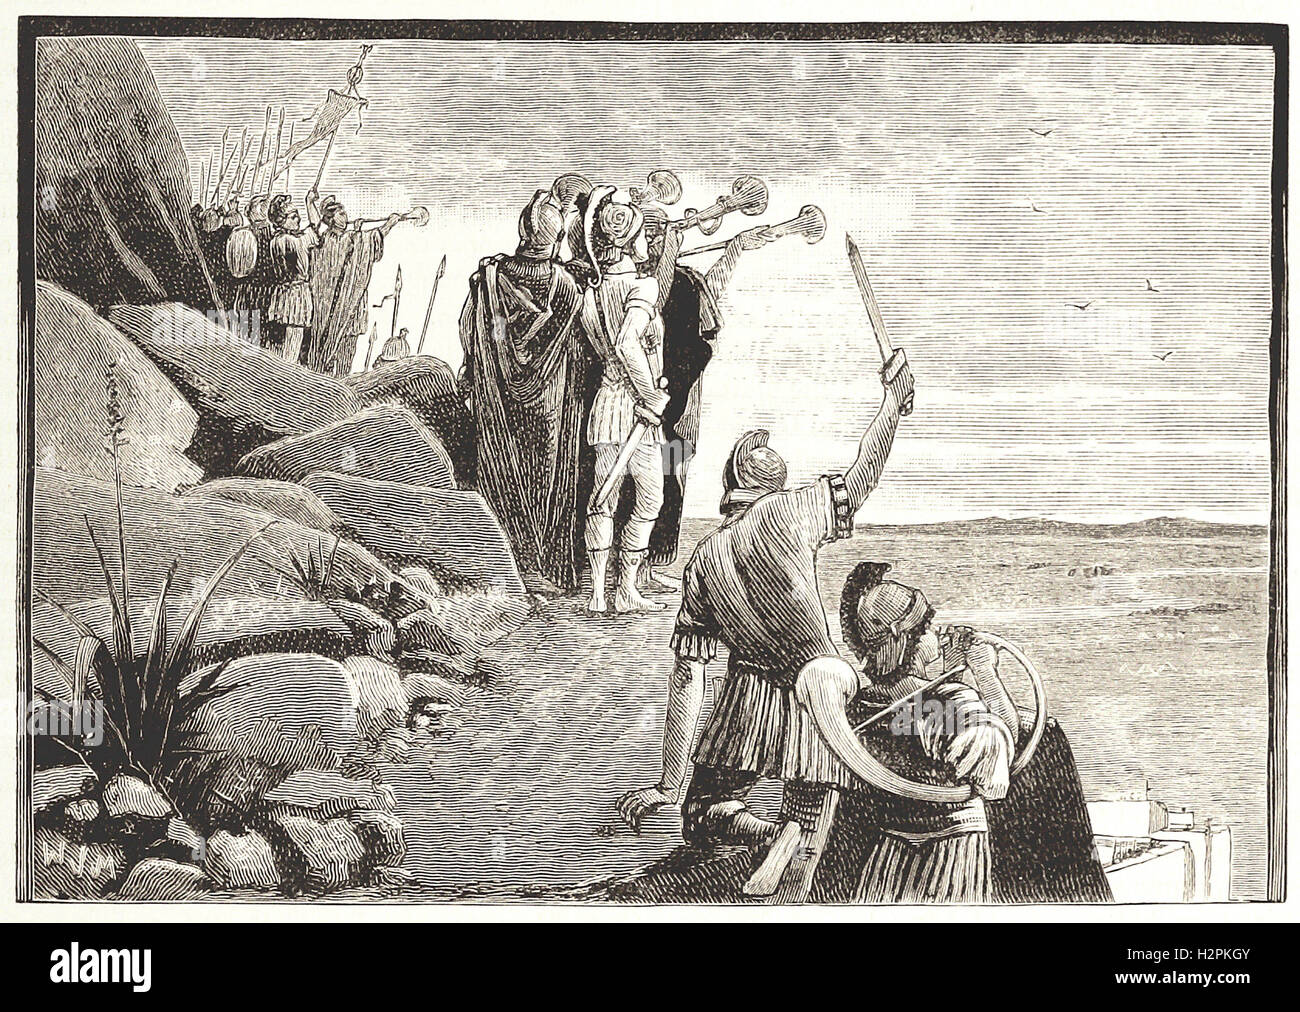 AN INCIDENT IN THE JUGURTHINE WAR - from 'Cassell's Illustrated Universal History' - 1882 - Stock Image